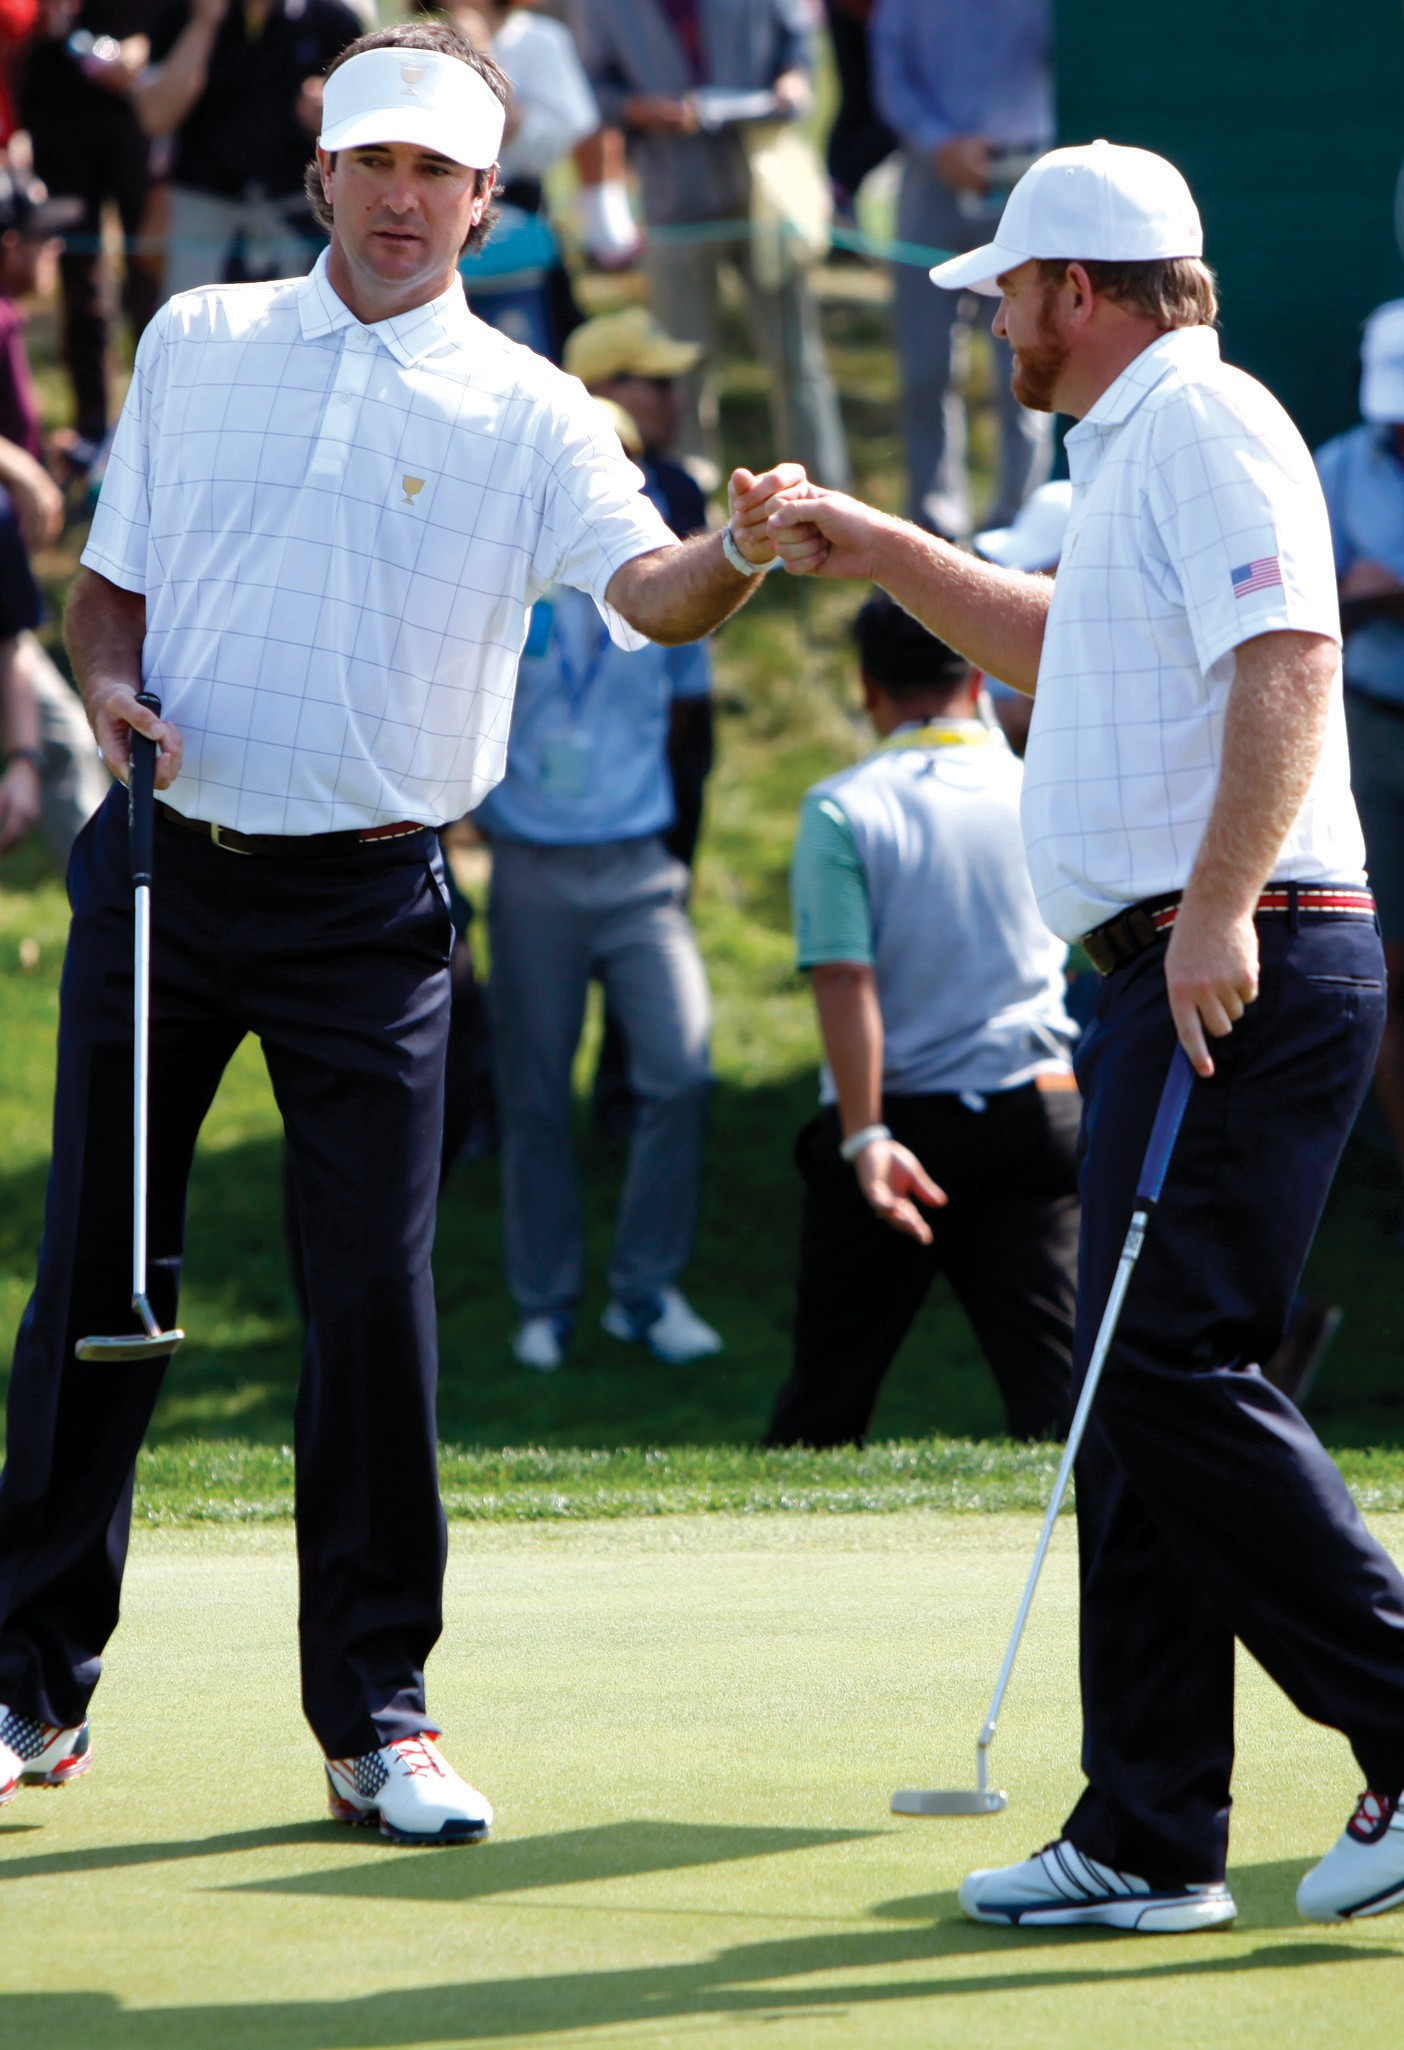 United States' Bubba Watson, left, and teammate J.B. Holmes celebrate during their foursome match at the Presidents Cup golf tournament at the Jack Nicklaus Golf Club Korea, in Incheon, South Korea, Thursday.